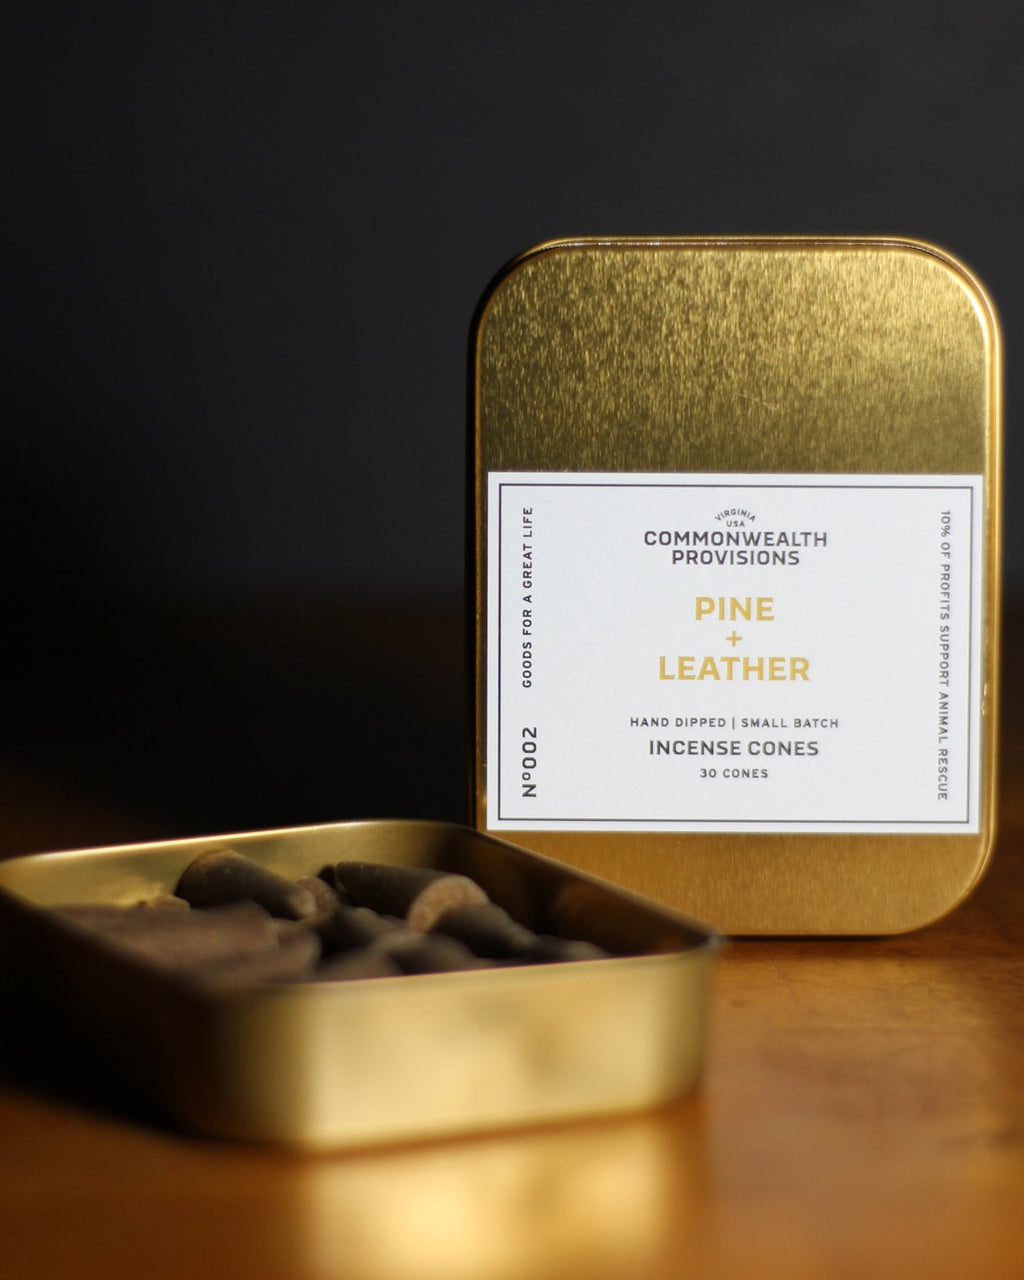 Commonwealth Provisions - Pine Leather Incense